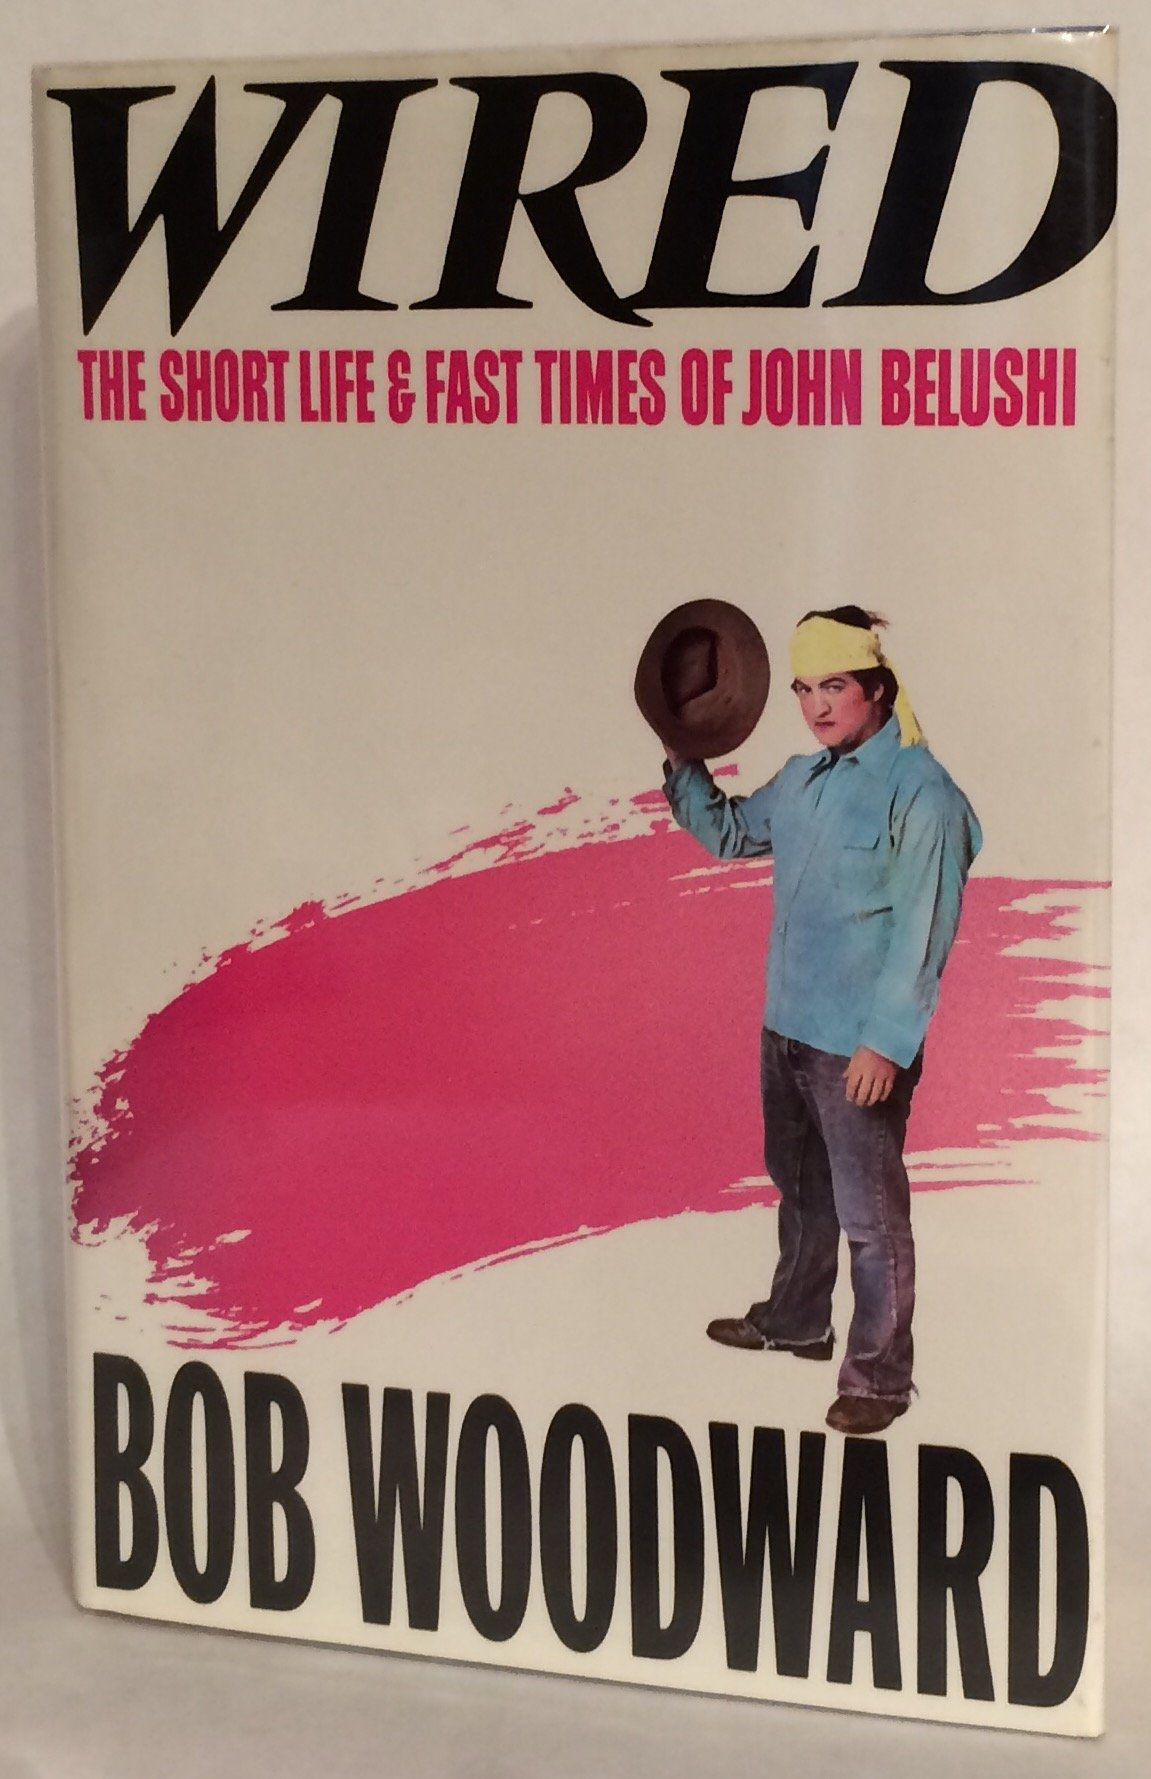 Wired: The Short Life and Fast Times of John Belushi: Amazon.co.uk ...